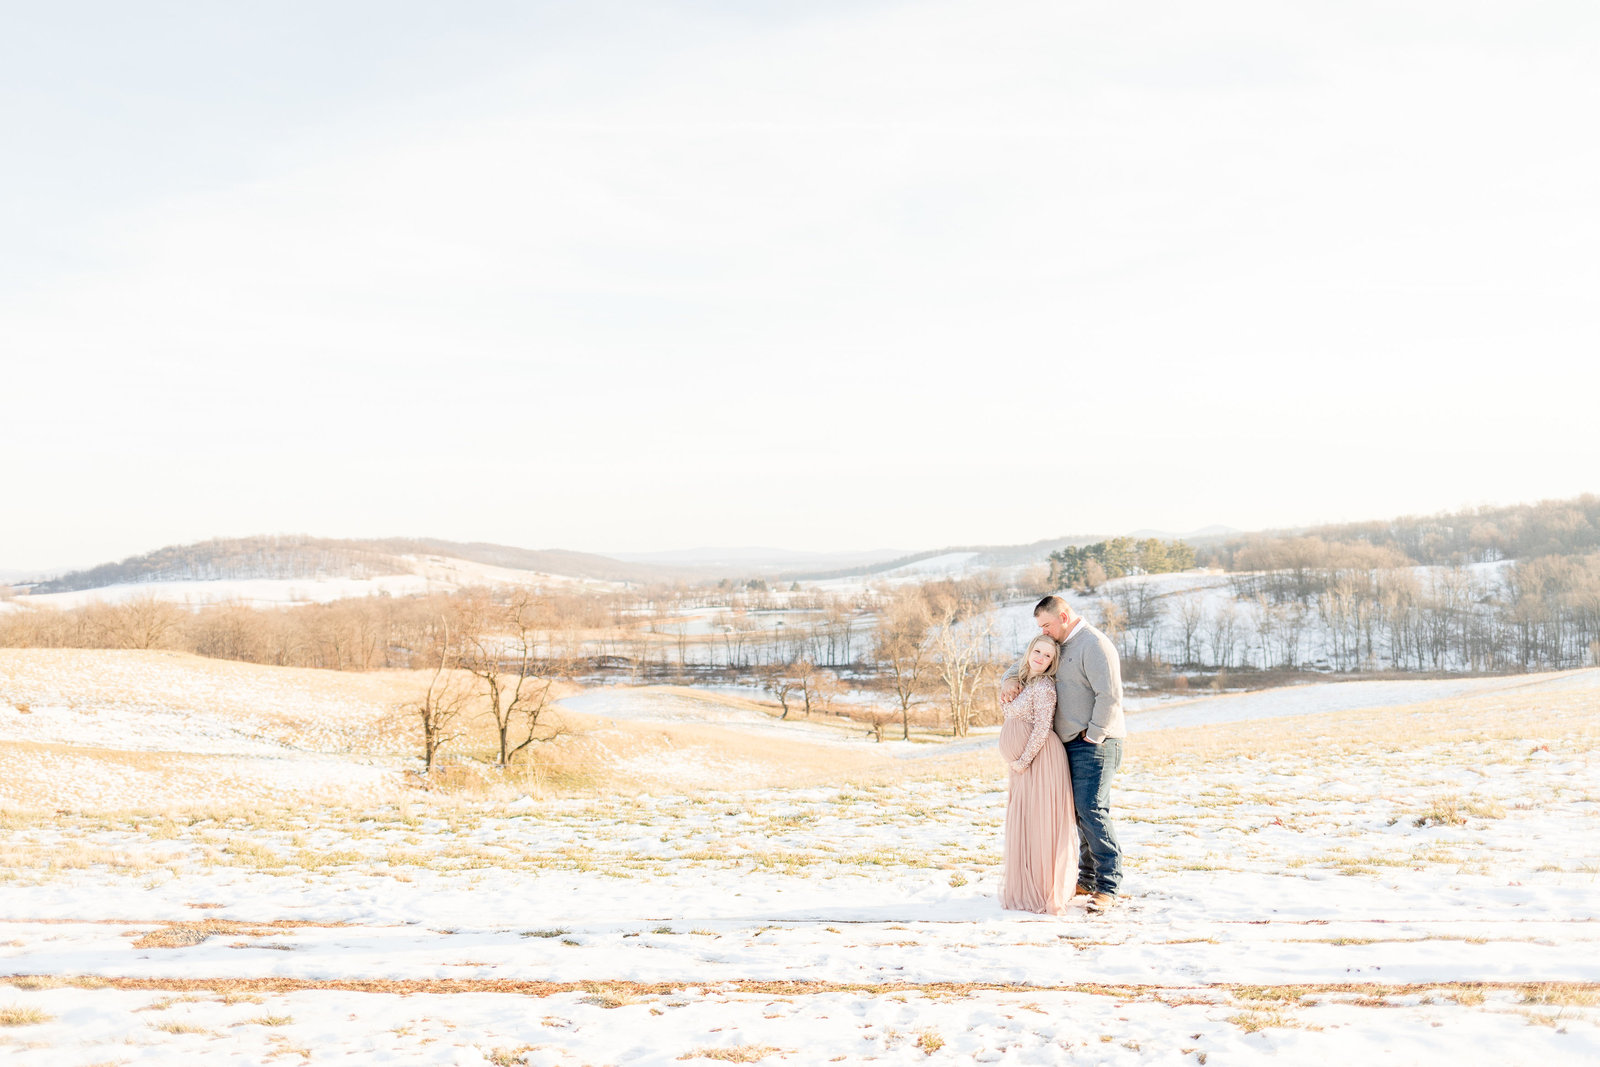 jess-dereck-snowy-winter-maternity-photo-session-014